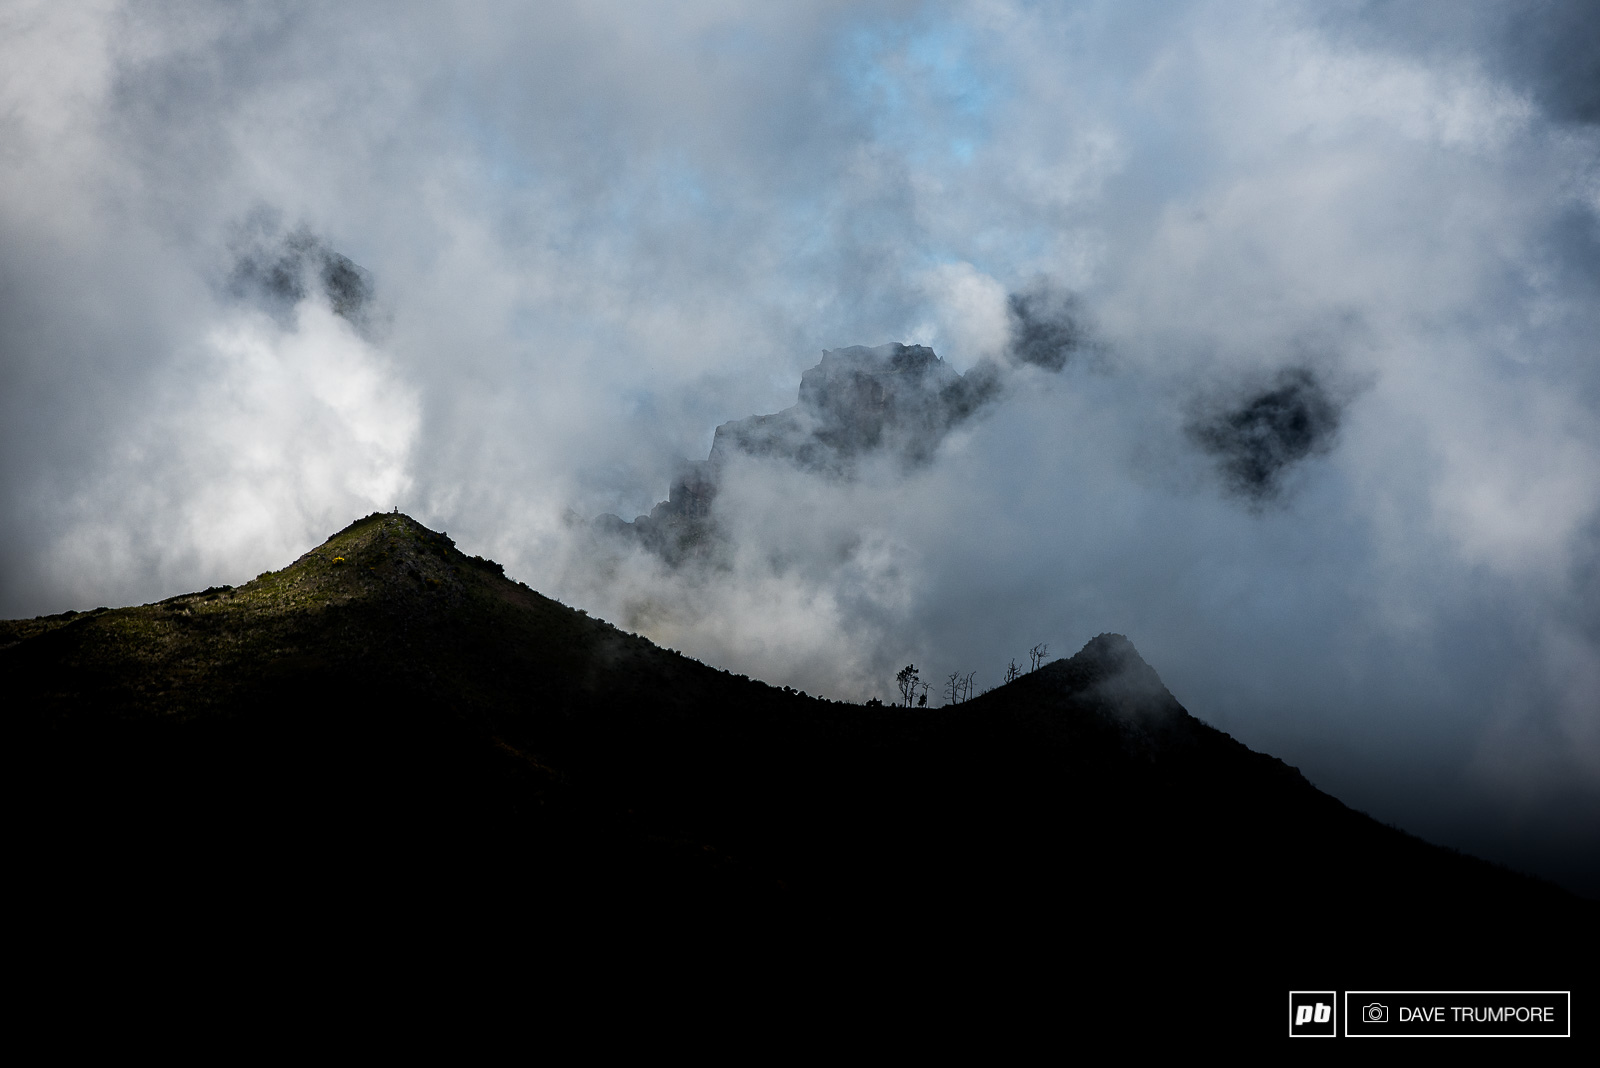 Clouds coming and going all day long on the ridges high up on Madeira.